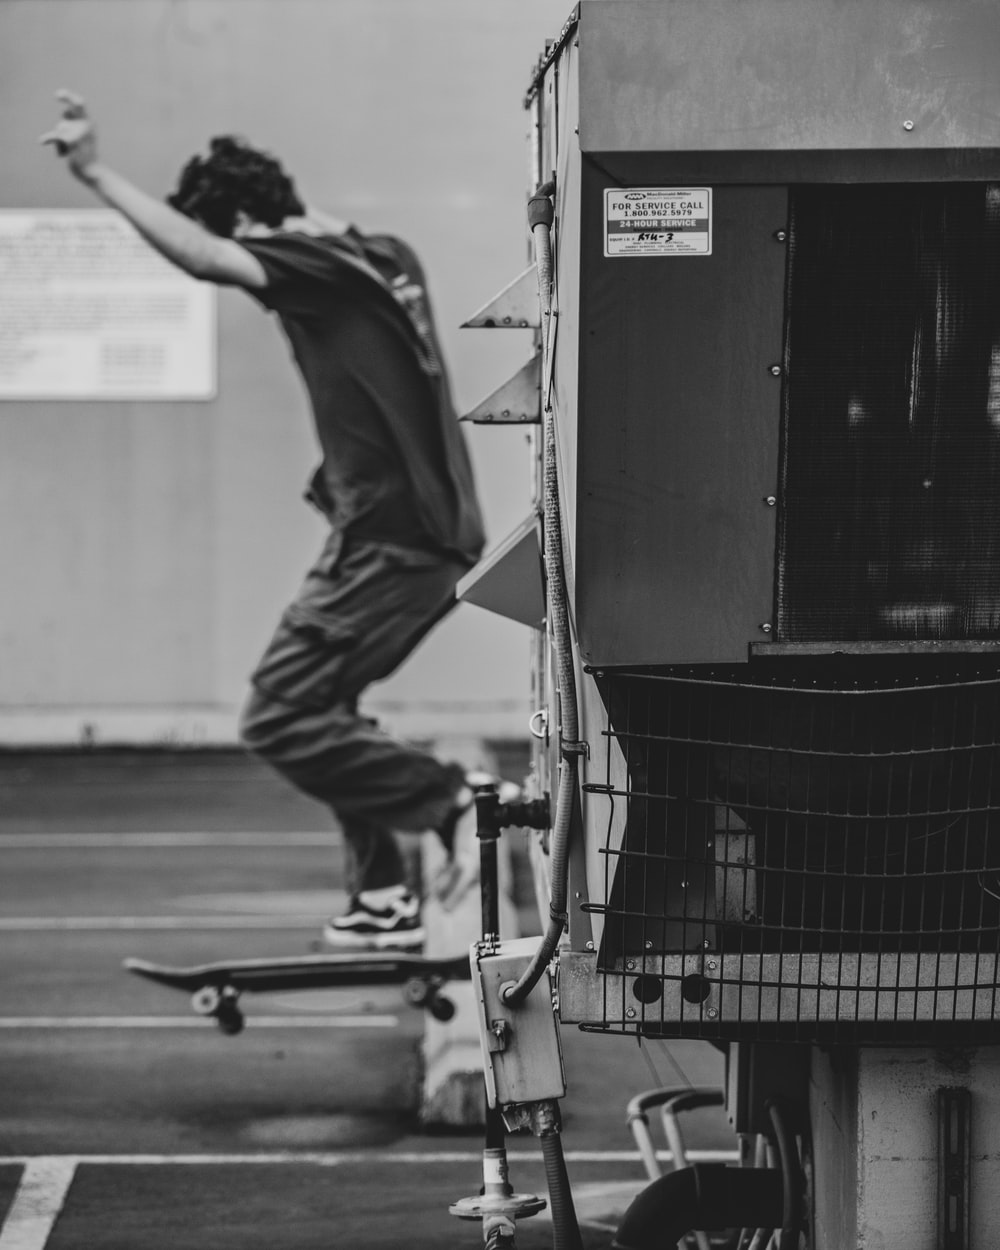 man in black t-shirt and pants riding on black skateboard in grayscale photography